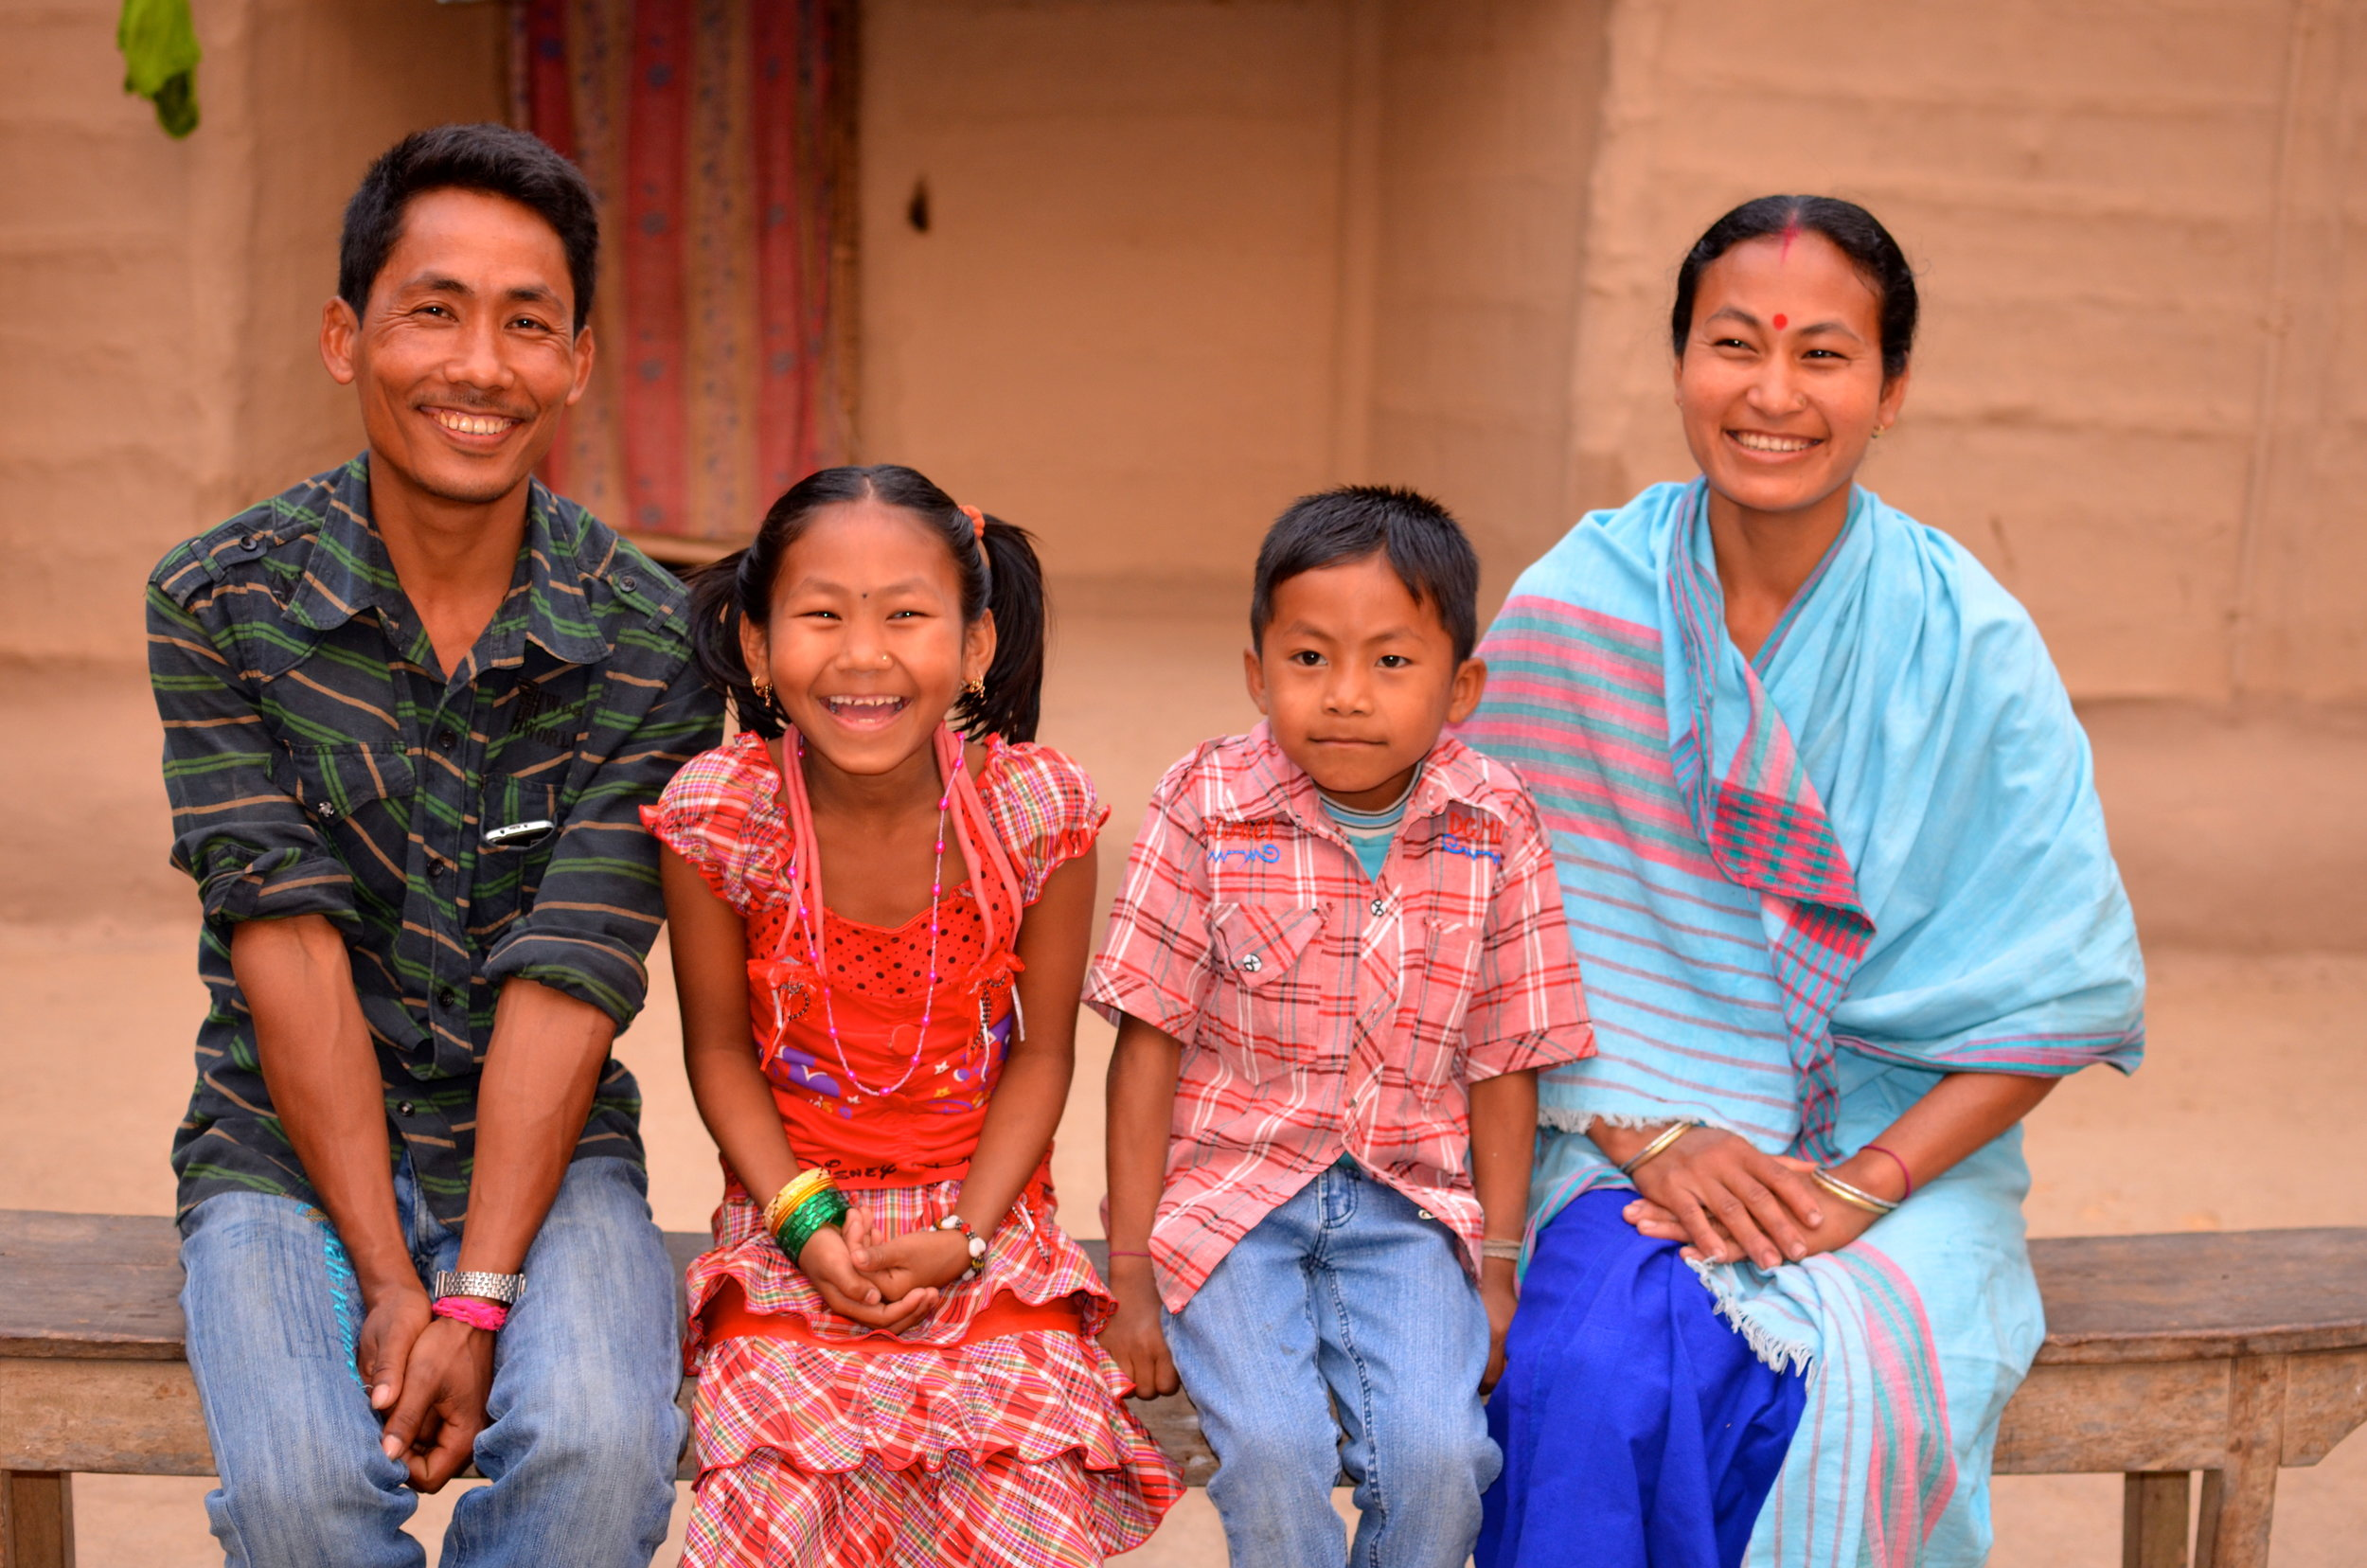 Elrhino jobholder, Dimbeshwar, and his family.